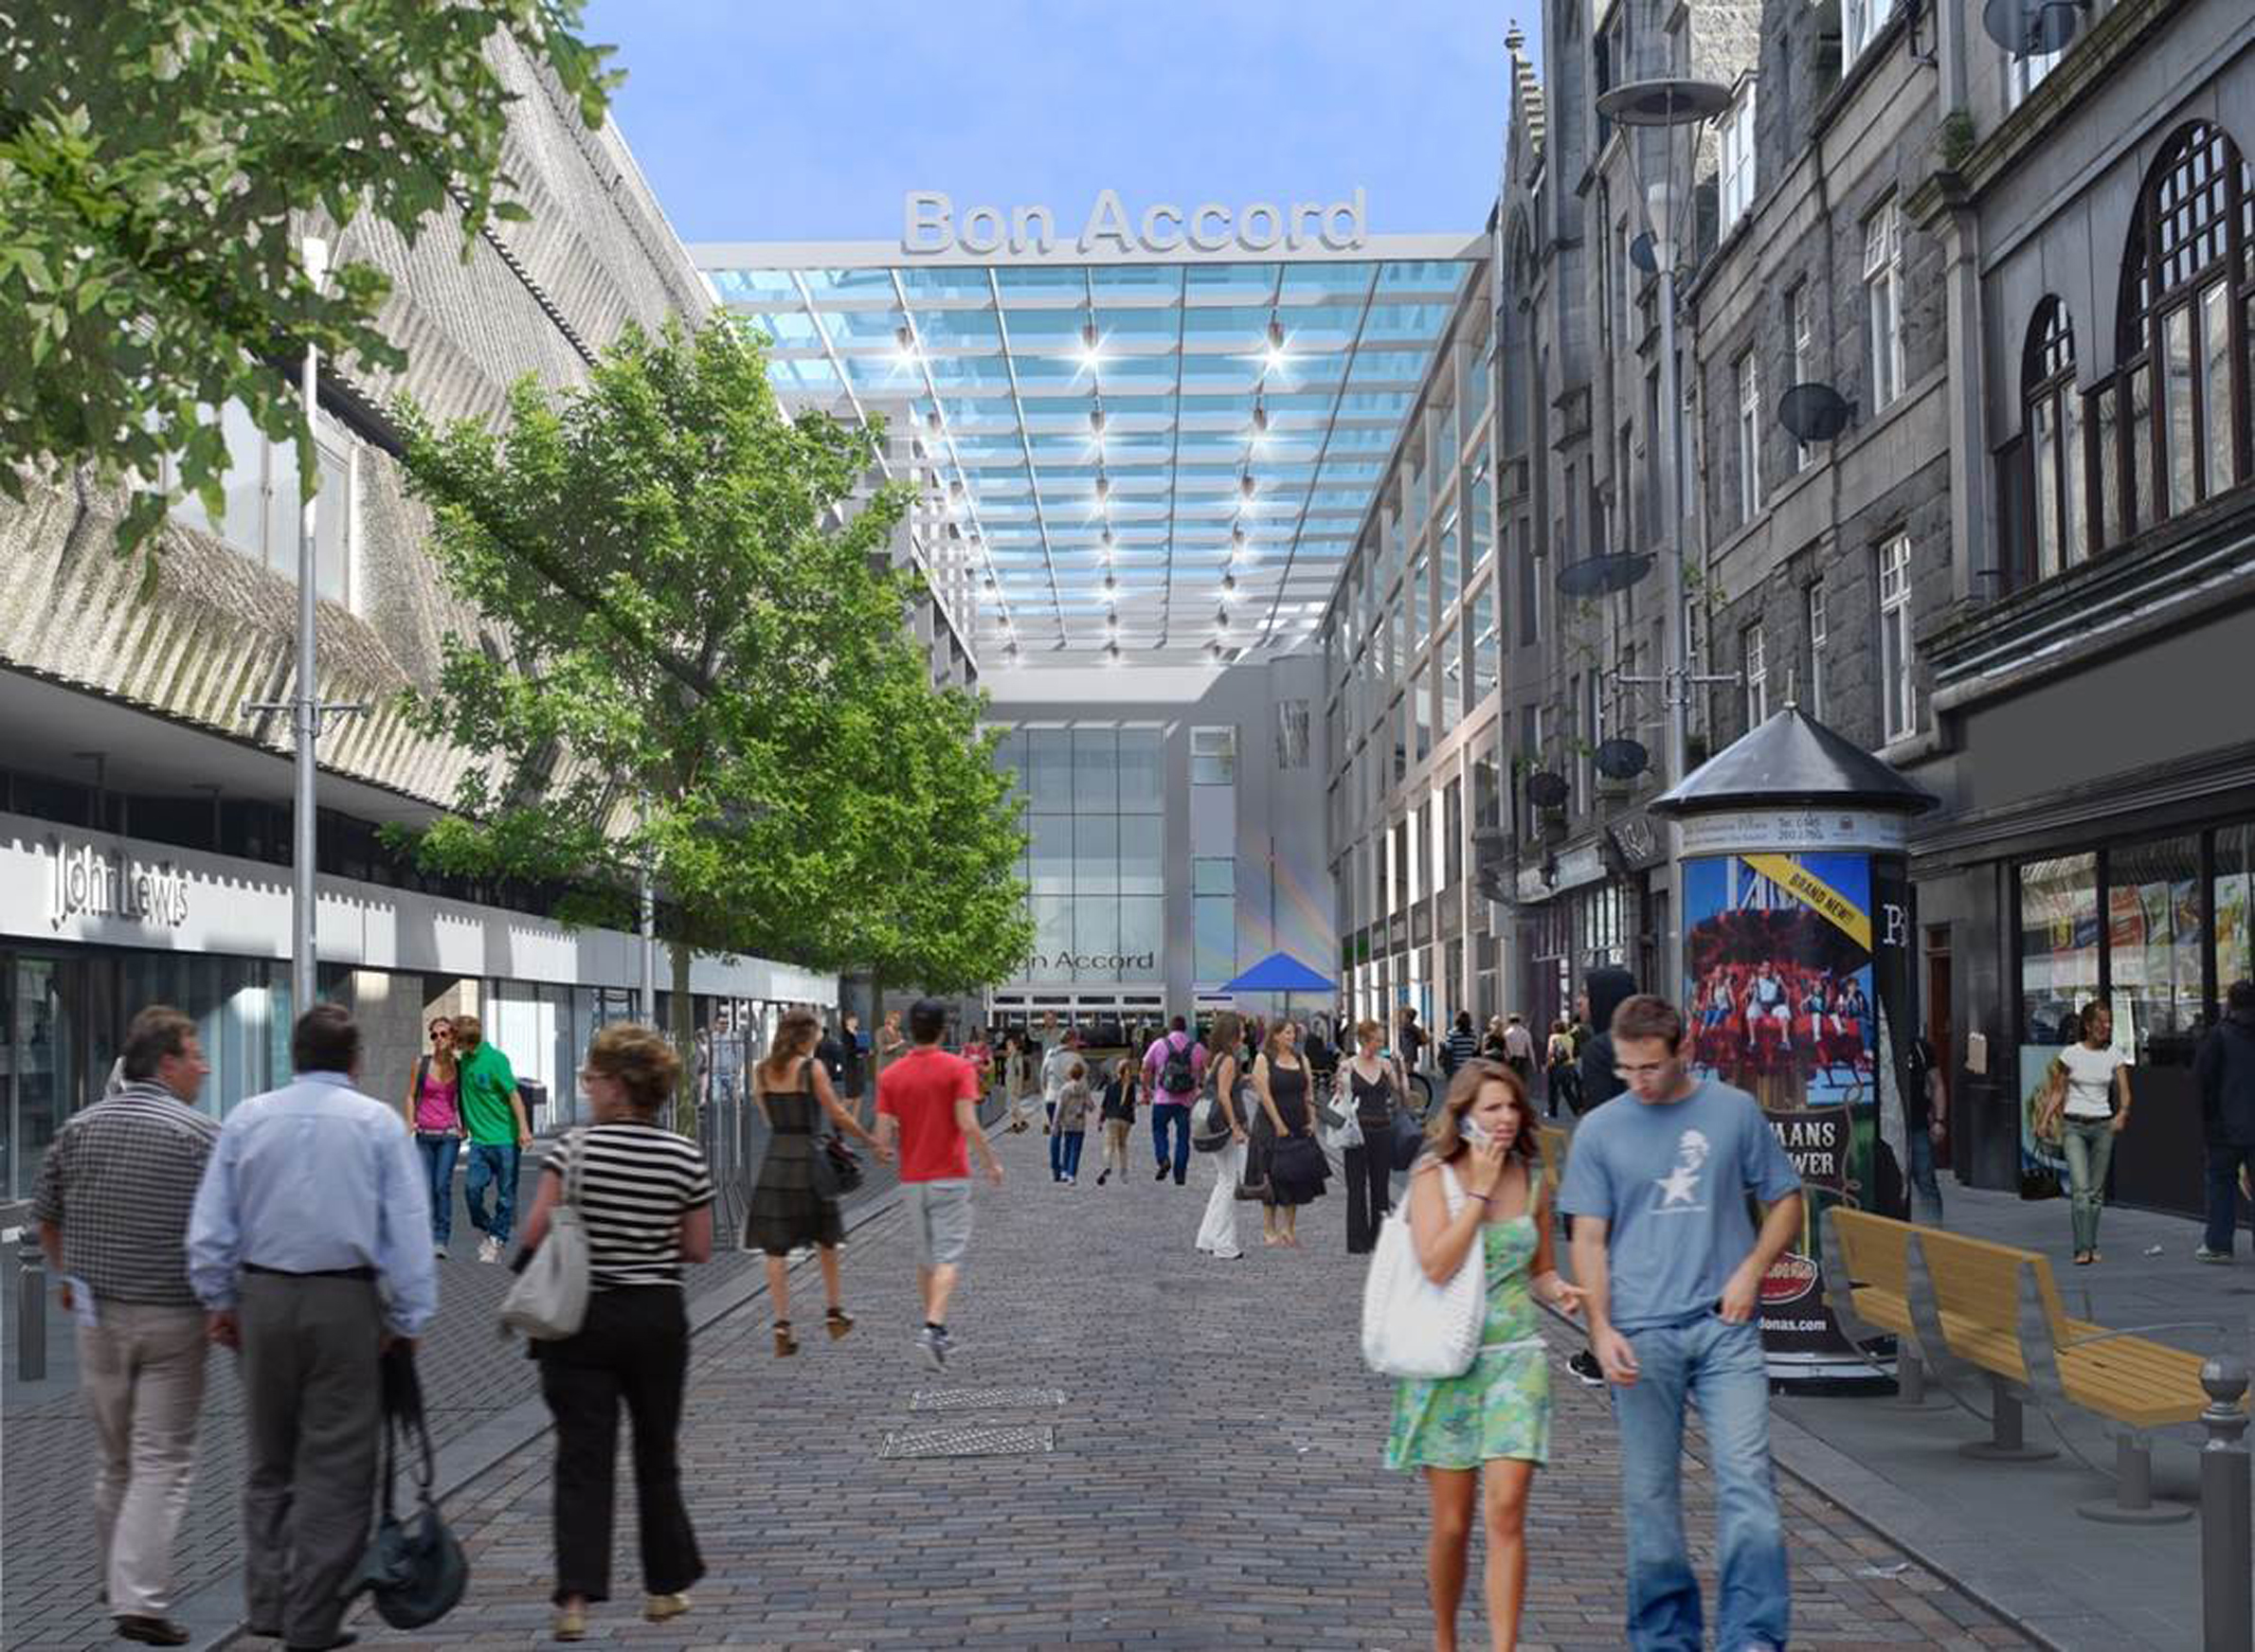 An image of possible changes to the Bon Accord Centre.